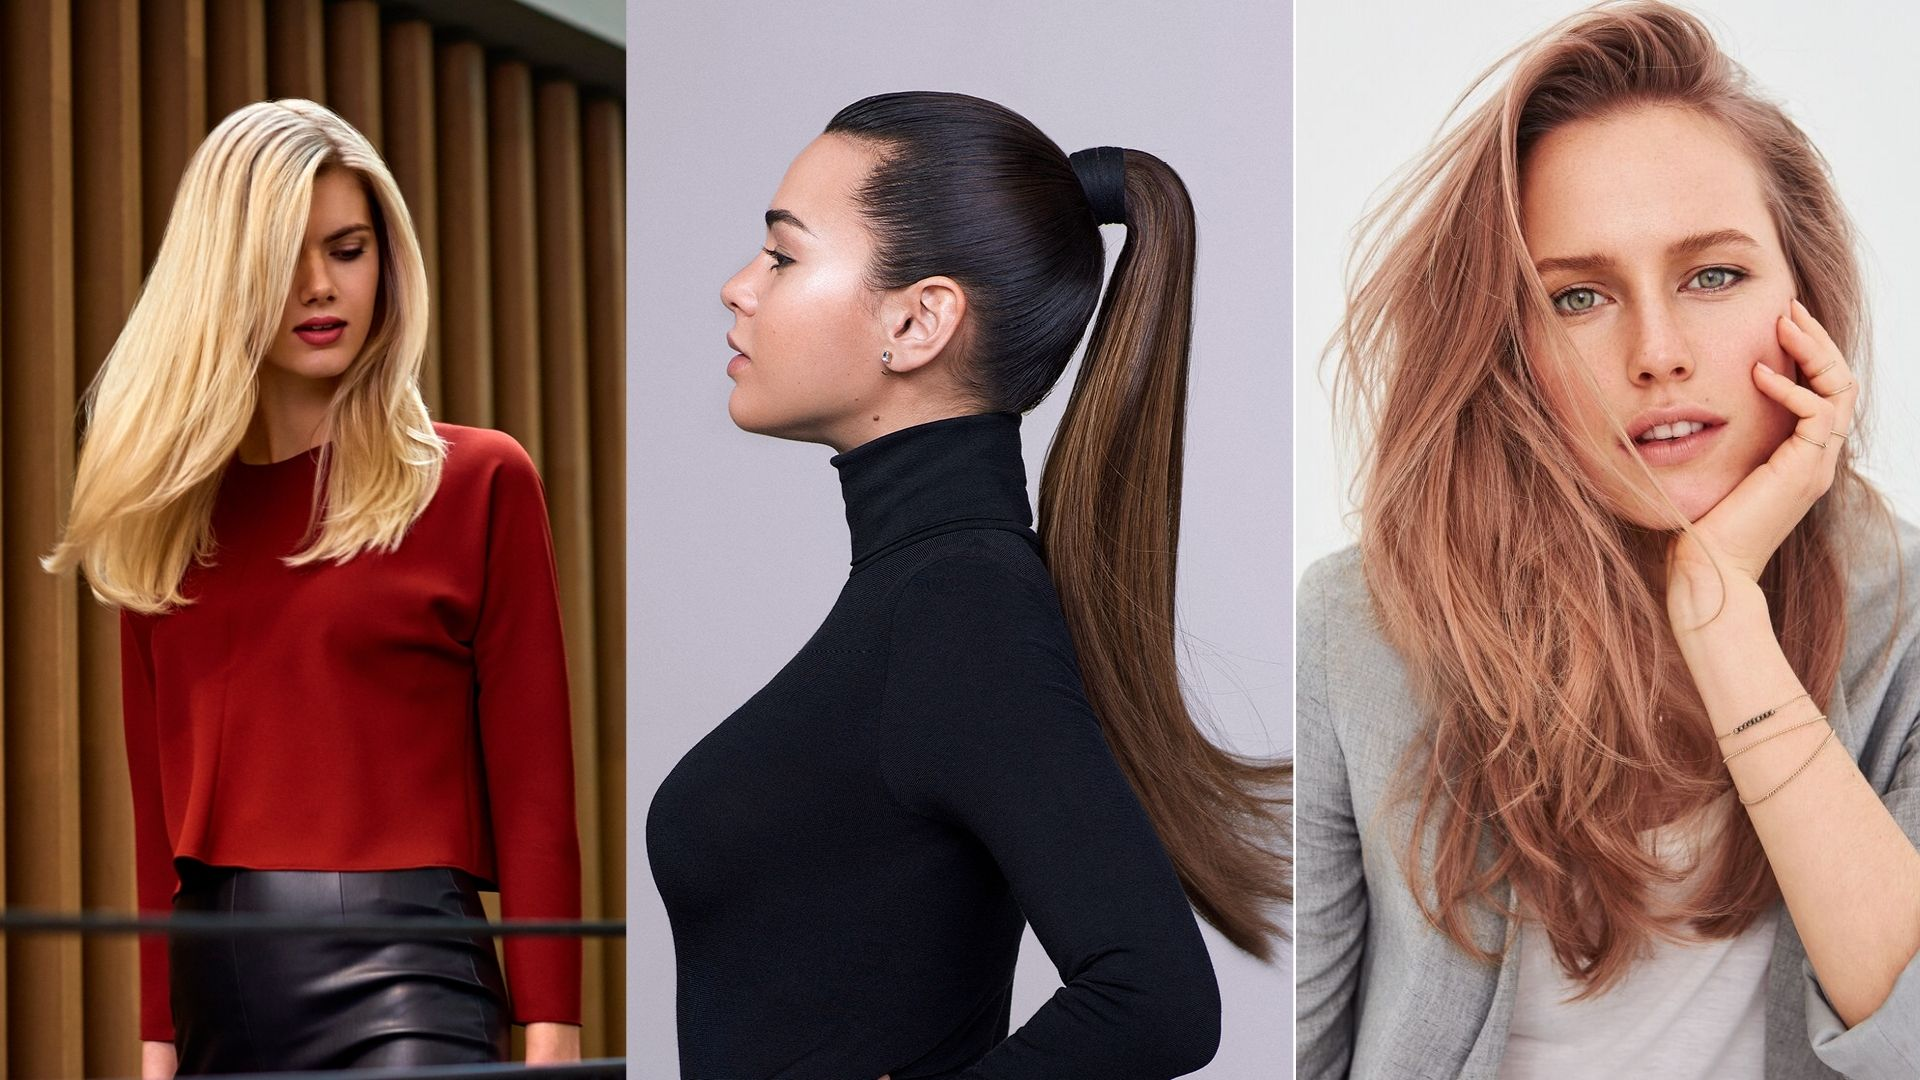 Why We Use Keune: Collage image of three women with styled hair.